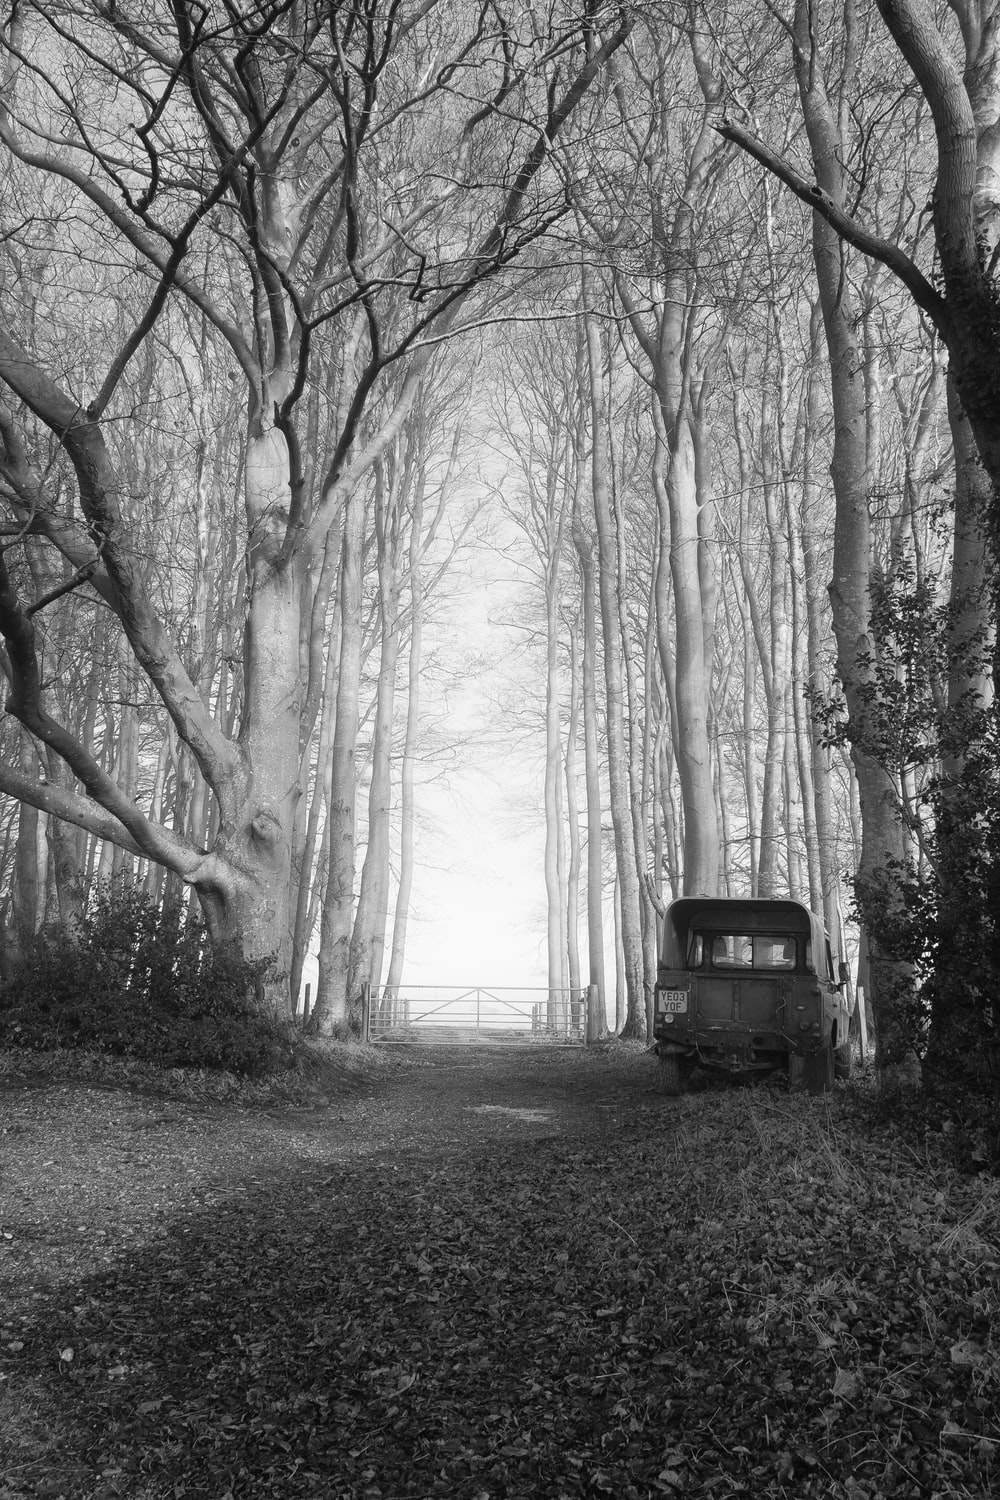 grayscale photo of car in forest